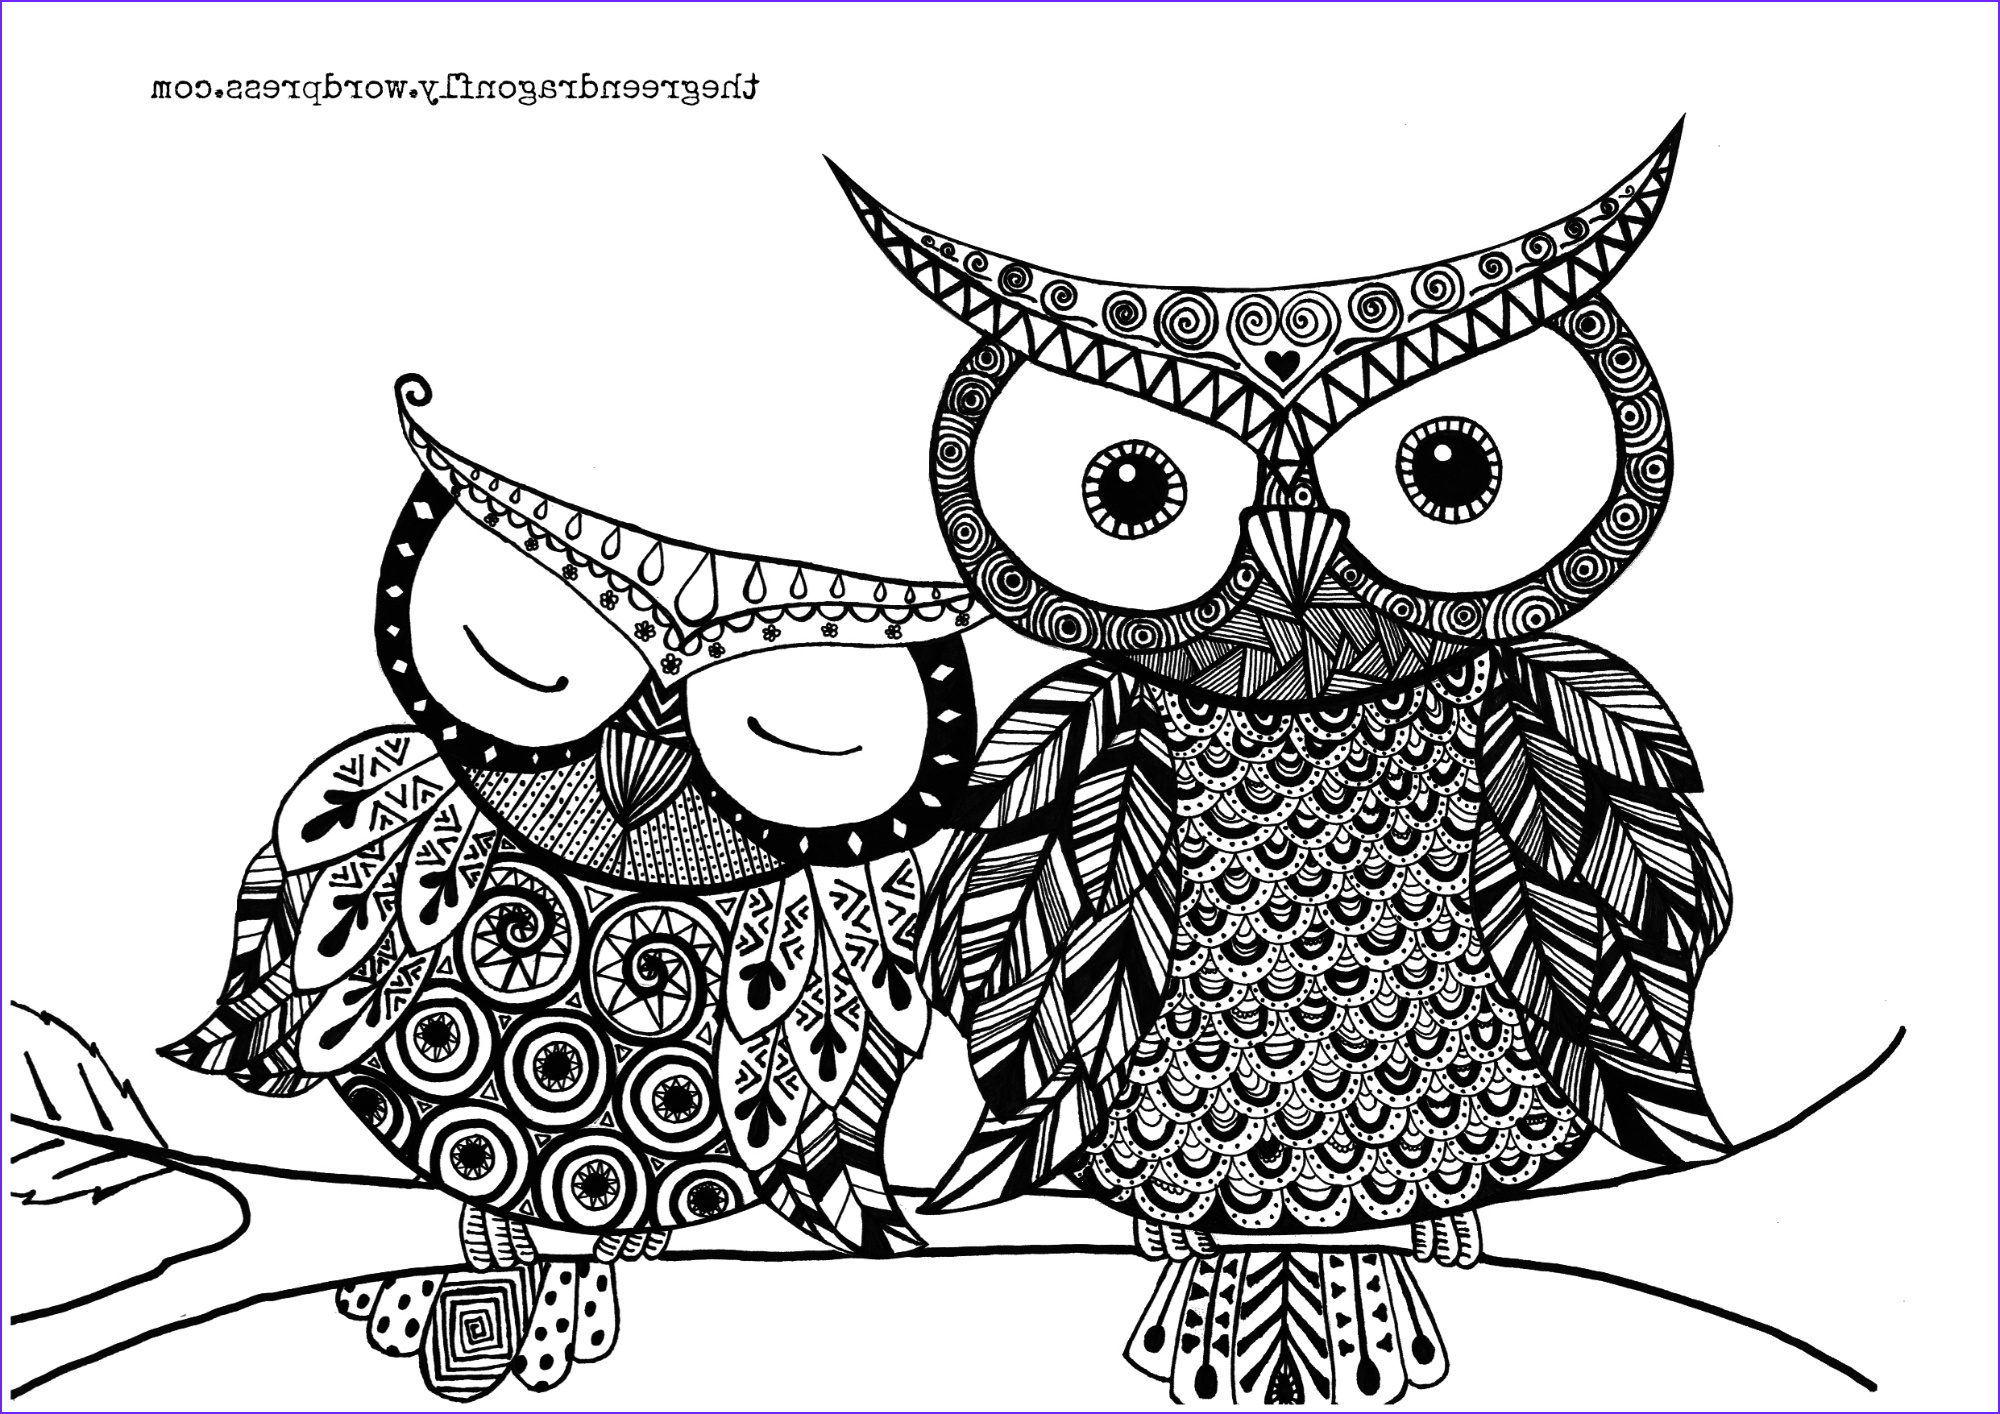 Owl Coloring Sheet Best Of Image Owl Coloring Page – the Green Dragonfly